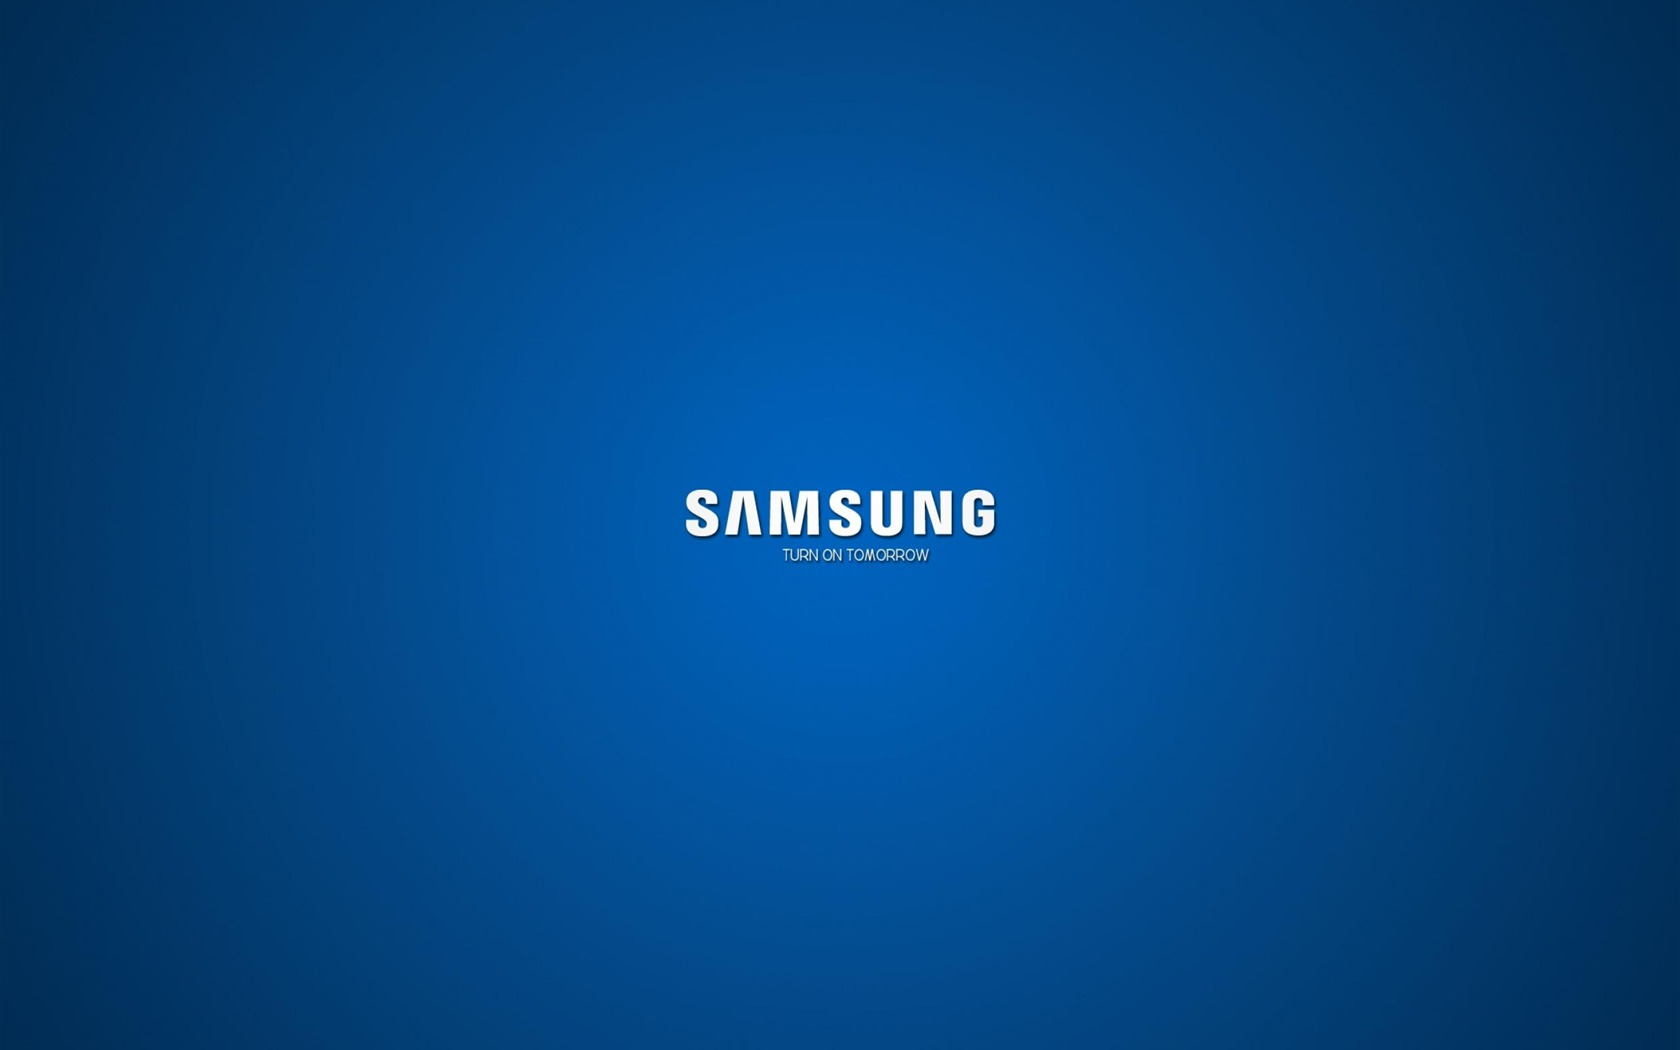 Samsung Brand Advertising Wallpaper 1680x1050 Download